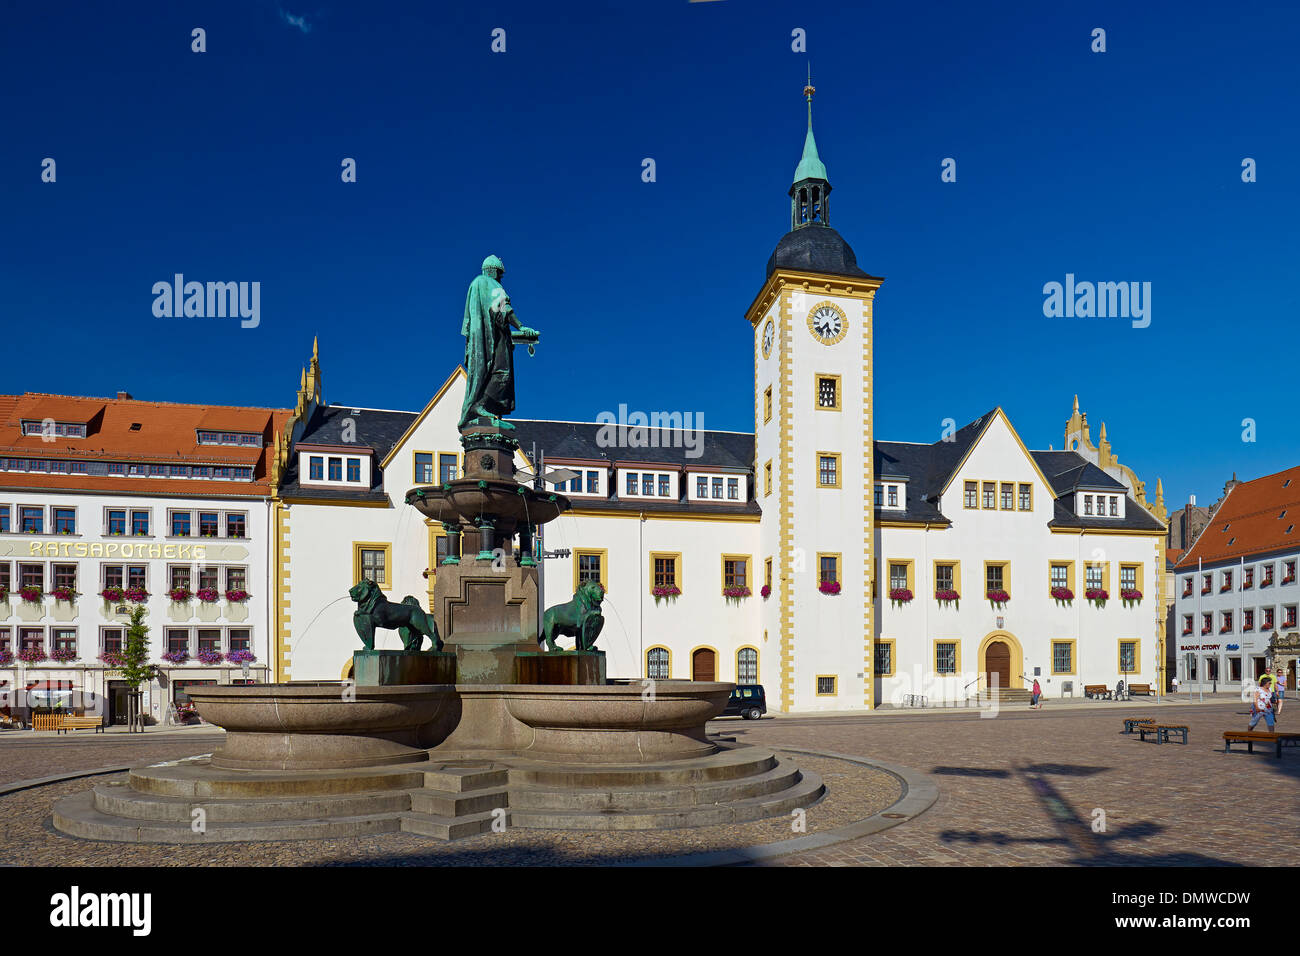 Obermarkt square with City Hall and fountain with Otto II monument in Freiberg, Mittelsachsen District, Saxony, Germany - Stock Image